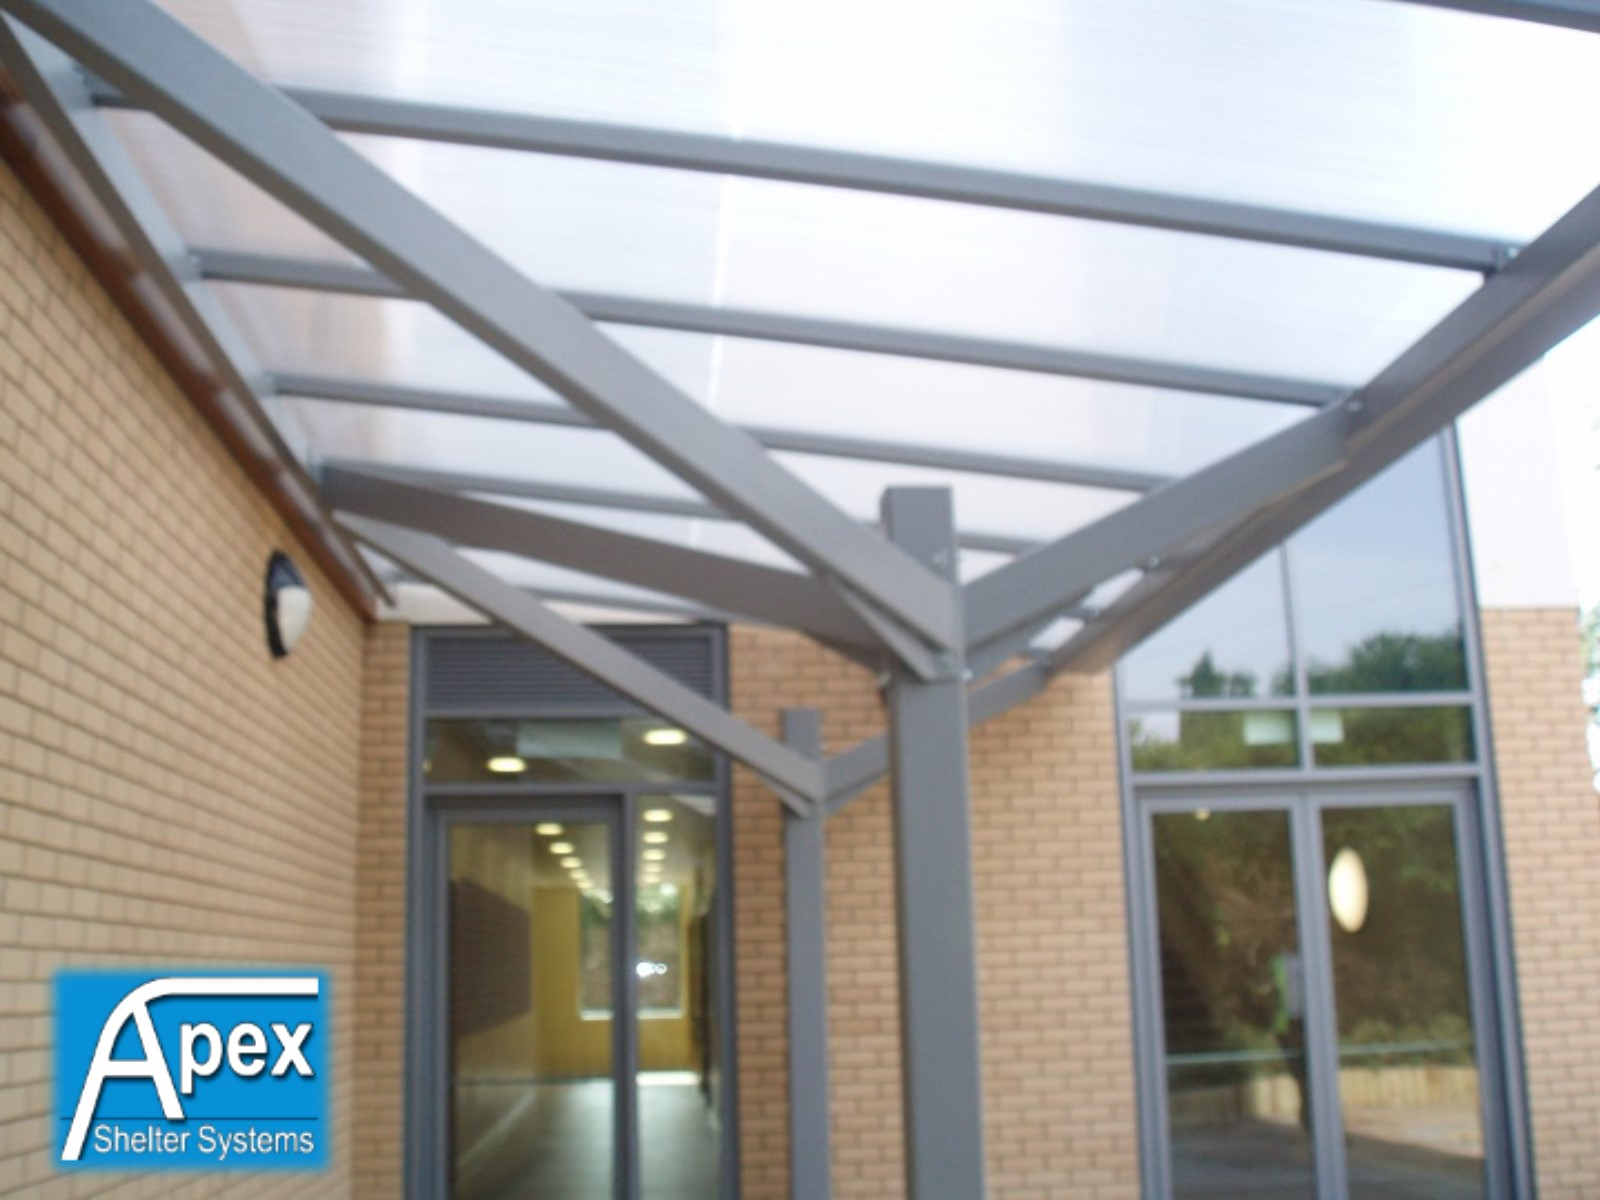 Paisley Entrance Door Canopy & Entrance Canopy Door Canopy - Apex Shelter SystemsApex Shelters